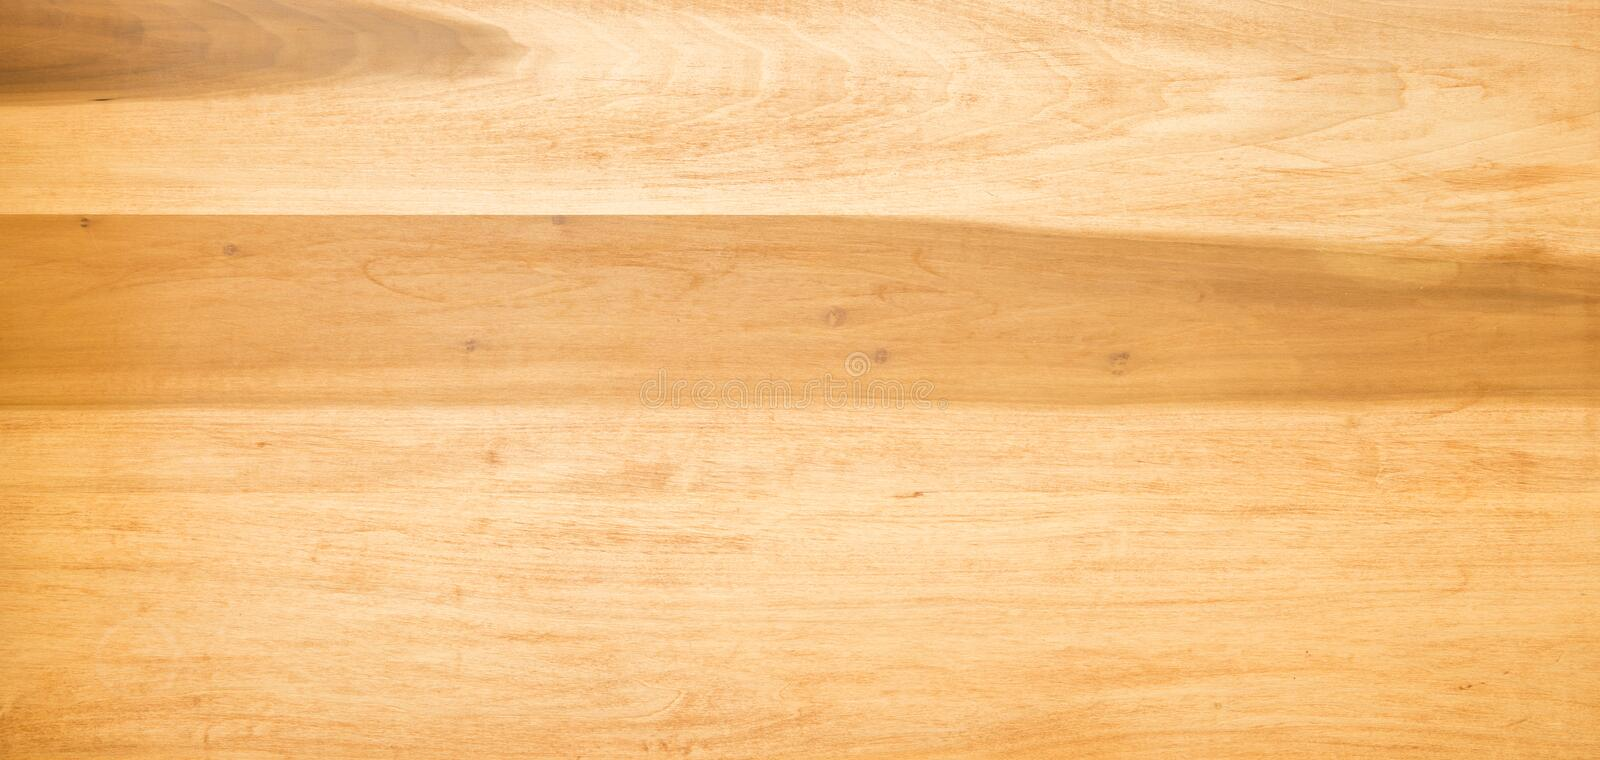 Wooden table top in light timber royalty free stock image